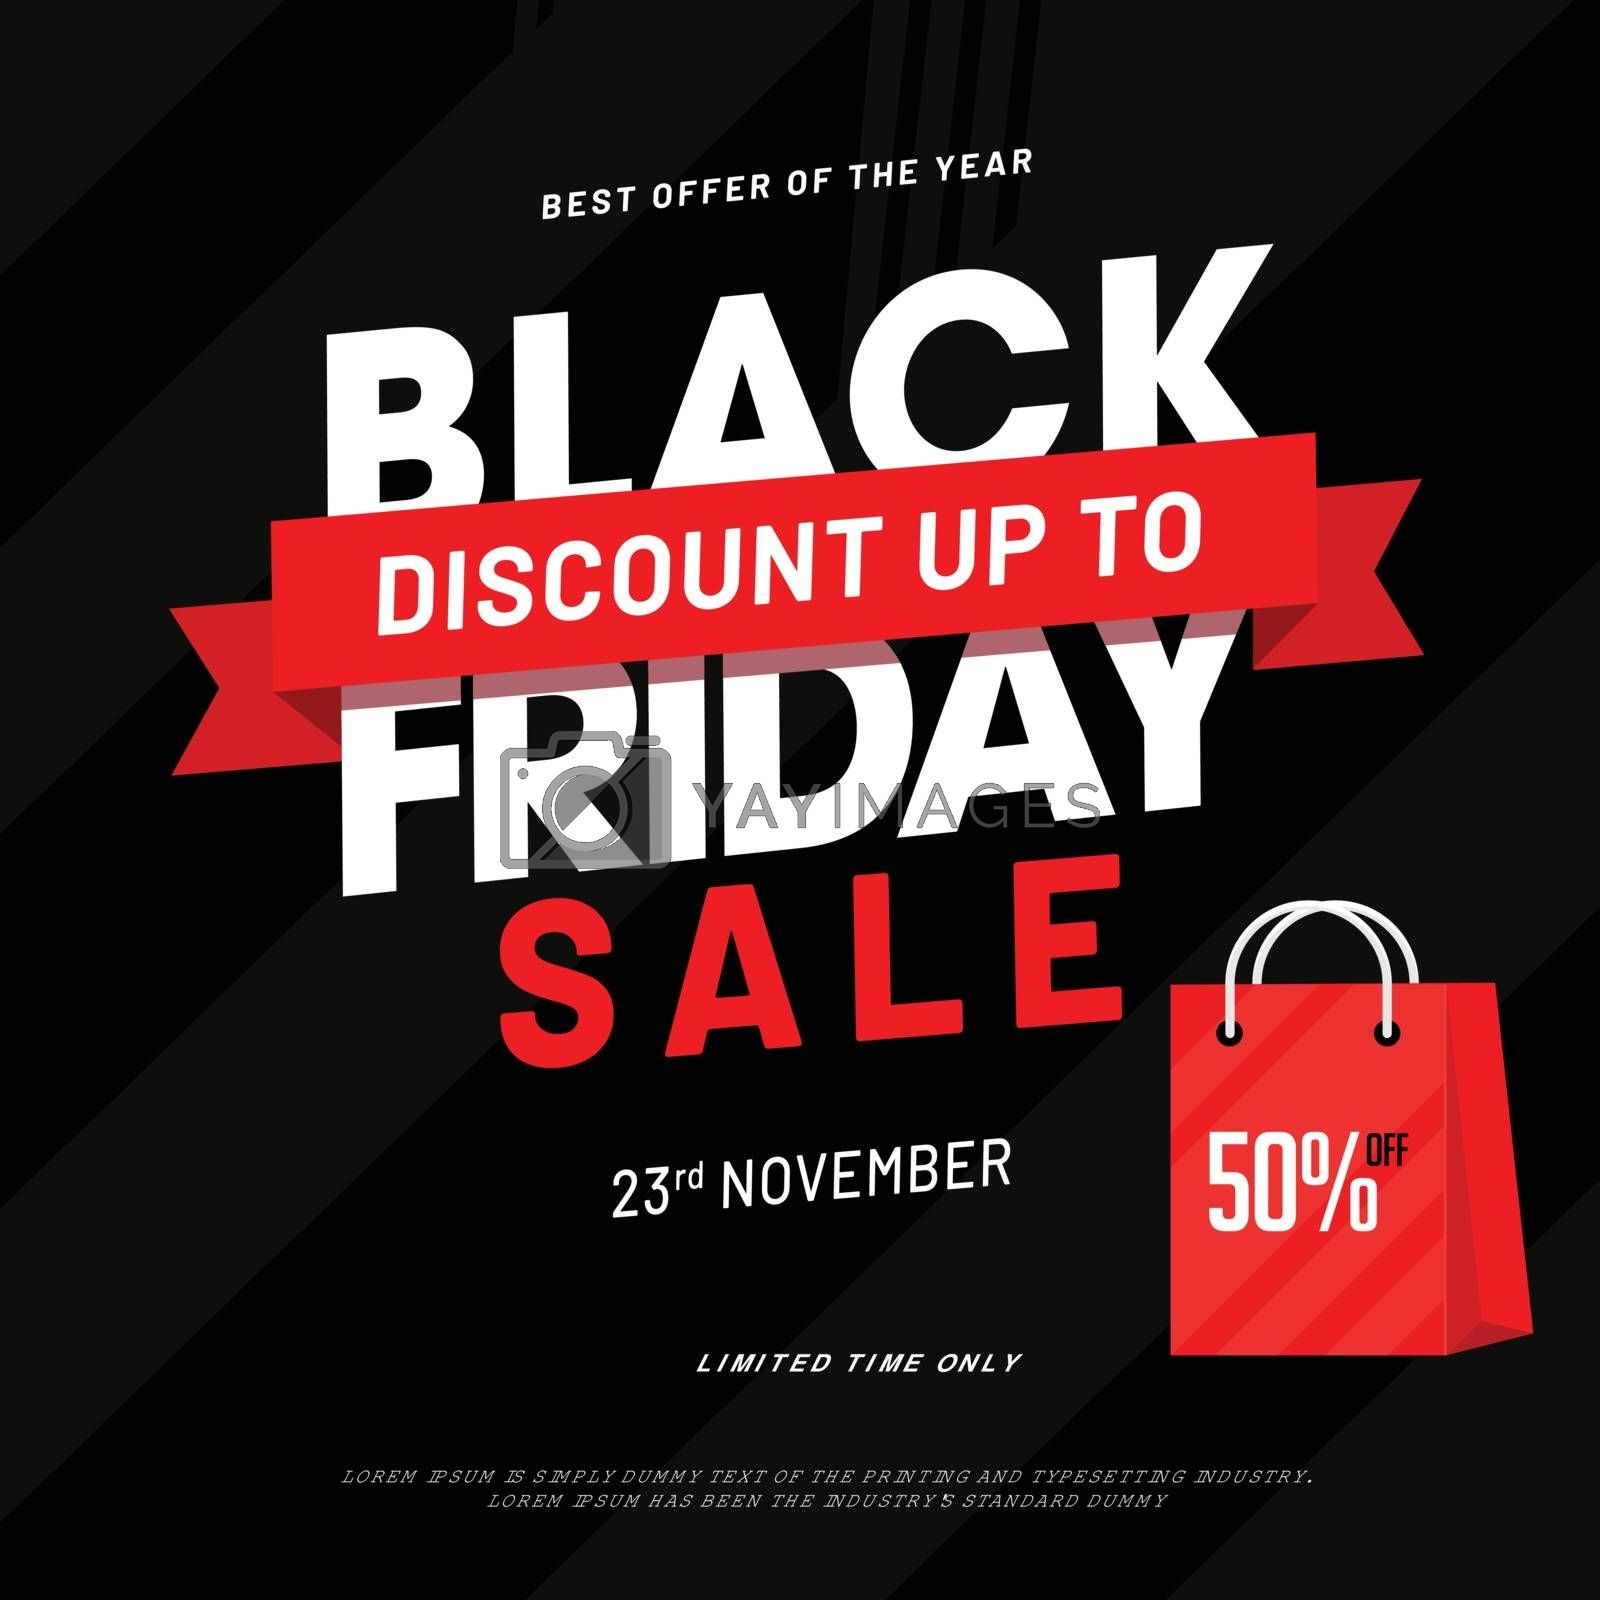 Advertising poster or template design with 50% discount offer on Black Friday Sale.